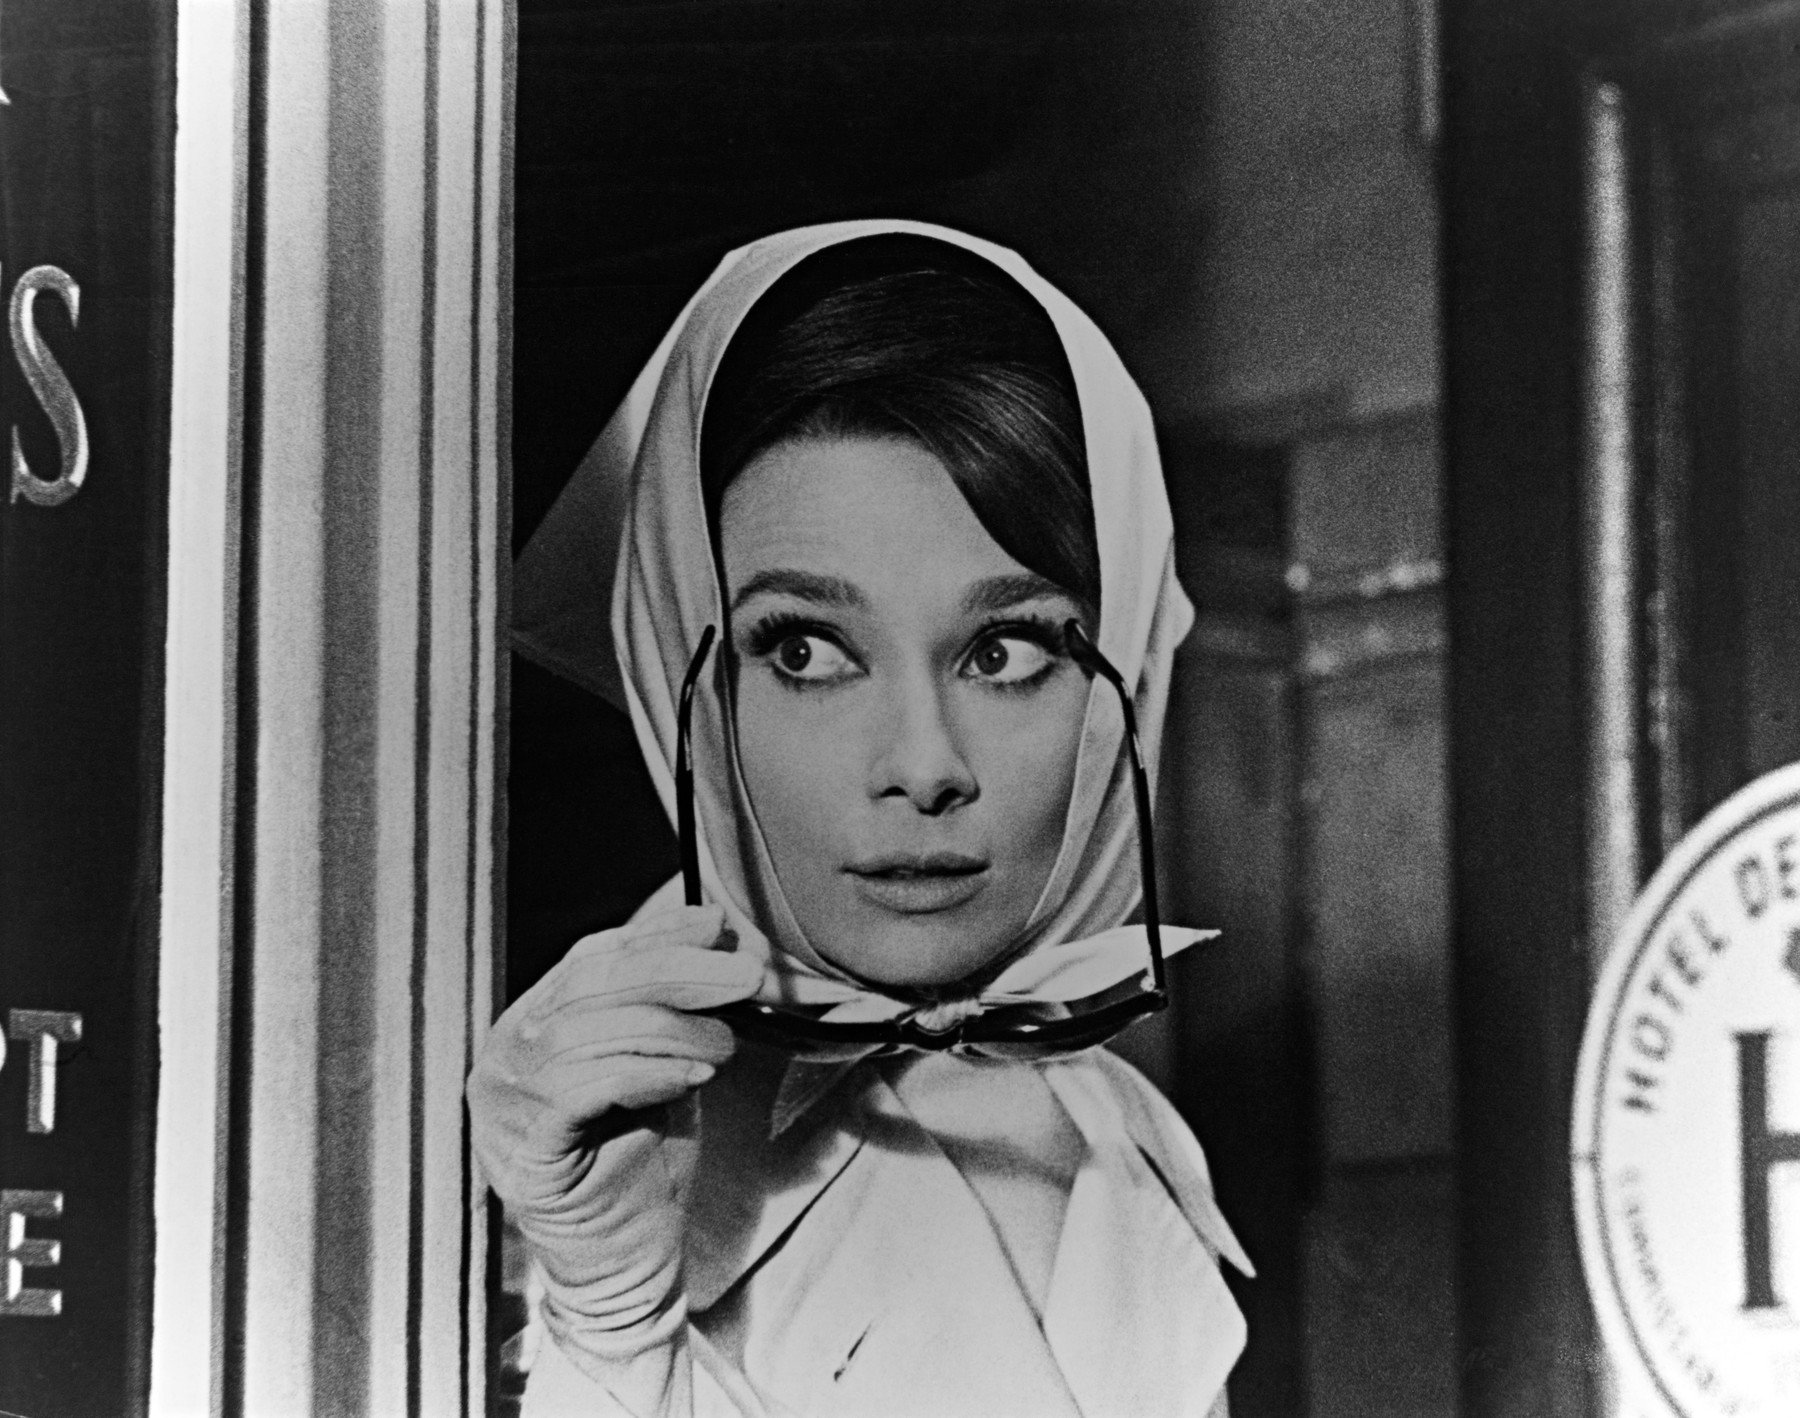 CHARADE (1963) - AUDREY HEPBURN., Image: 137046023, License: Rights-managed, Restrictions: Editorial Use only, Model Release: no, Credit line: Profimedia, Album